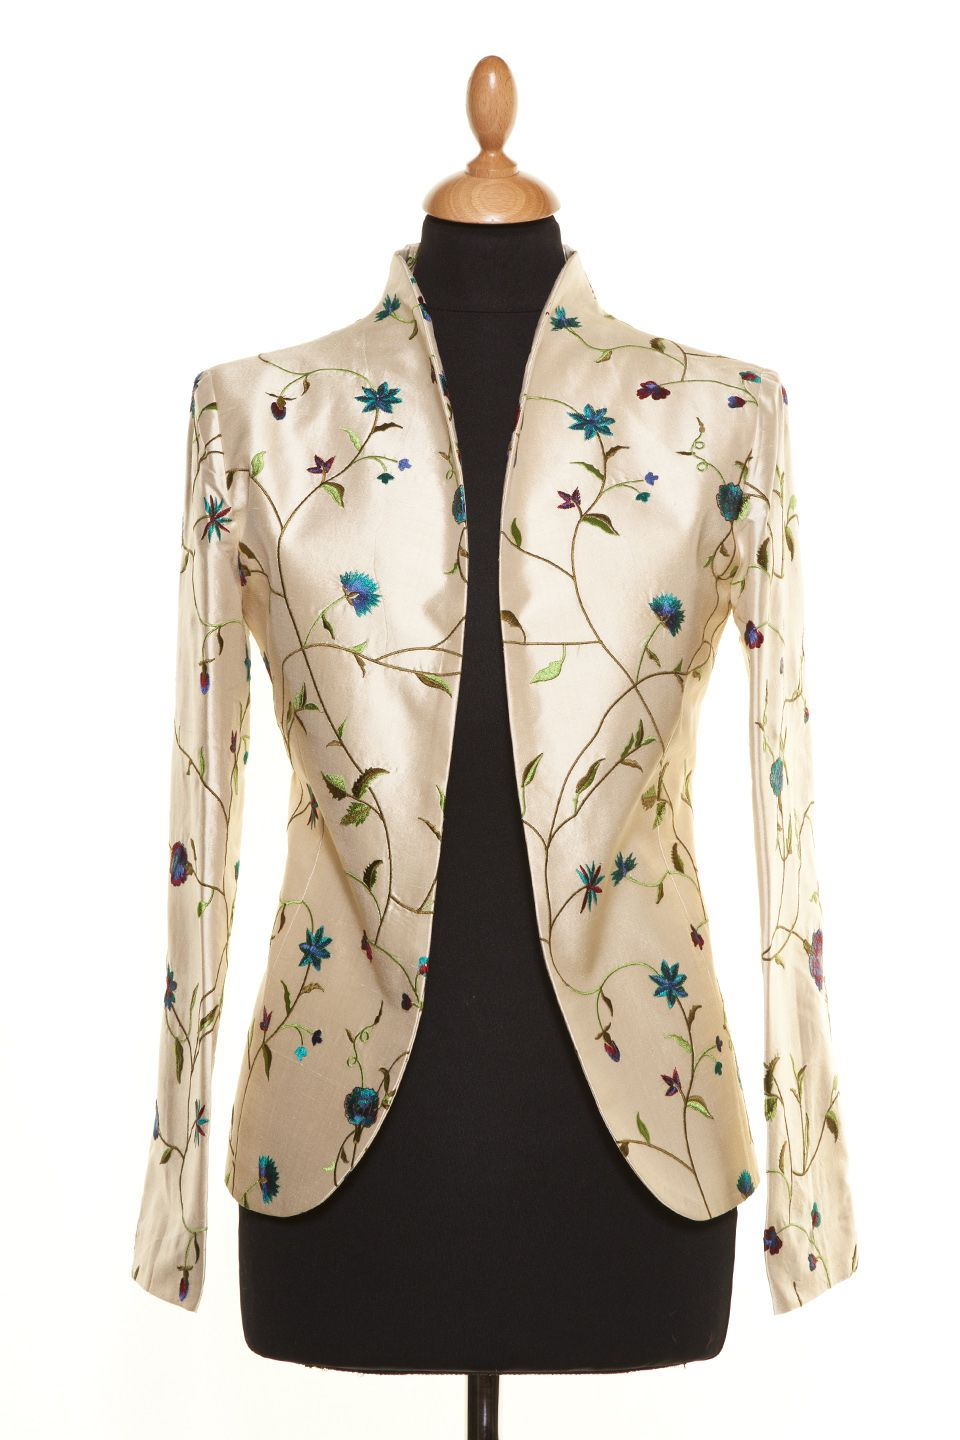 silk jacket - Google Search